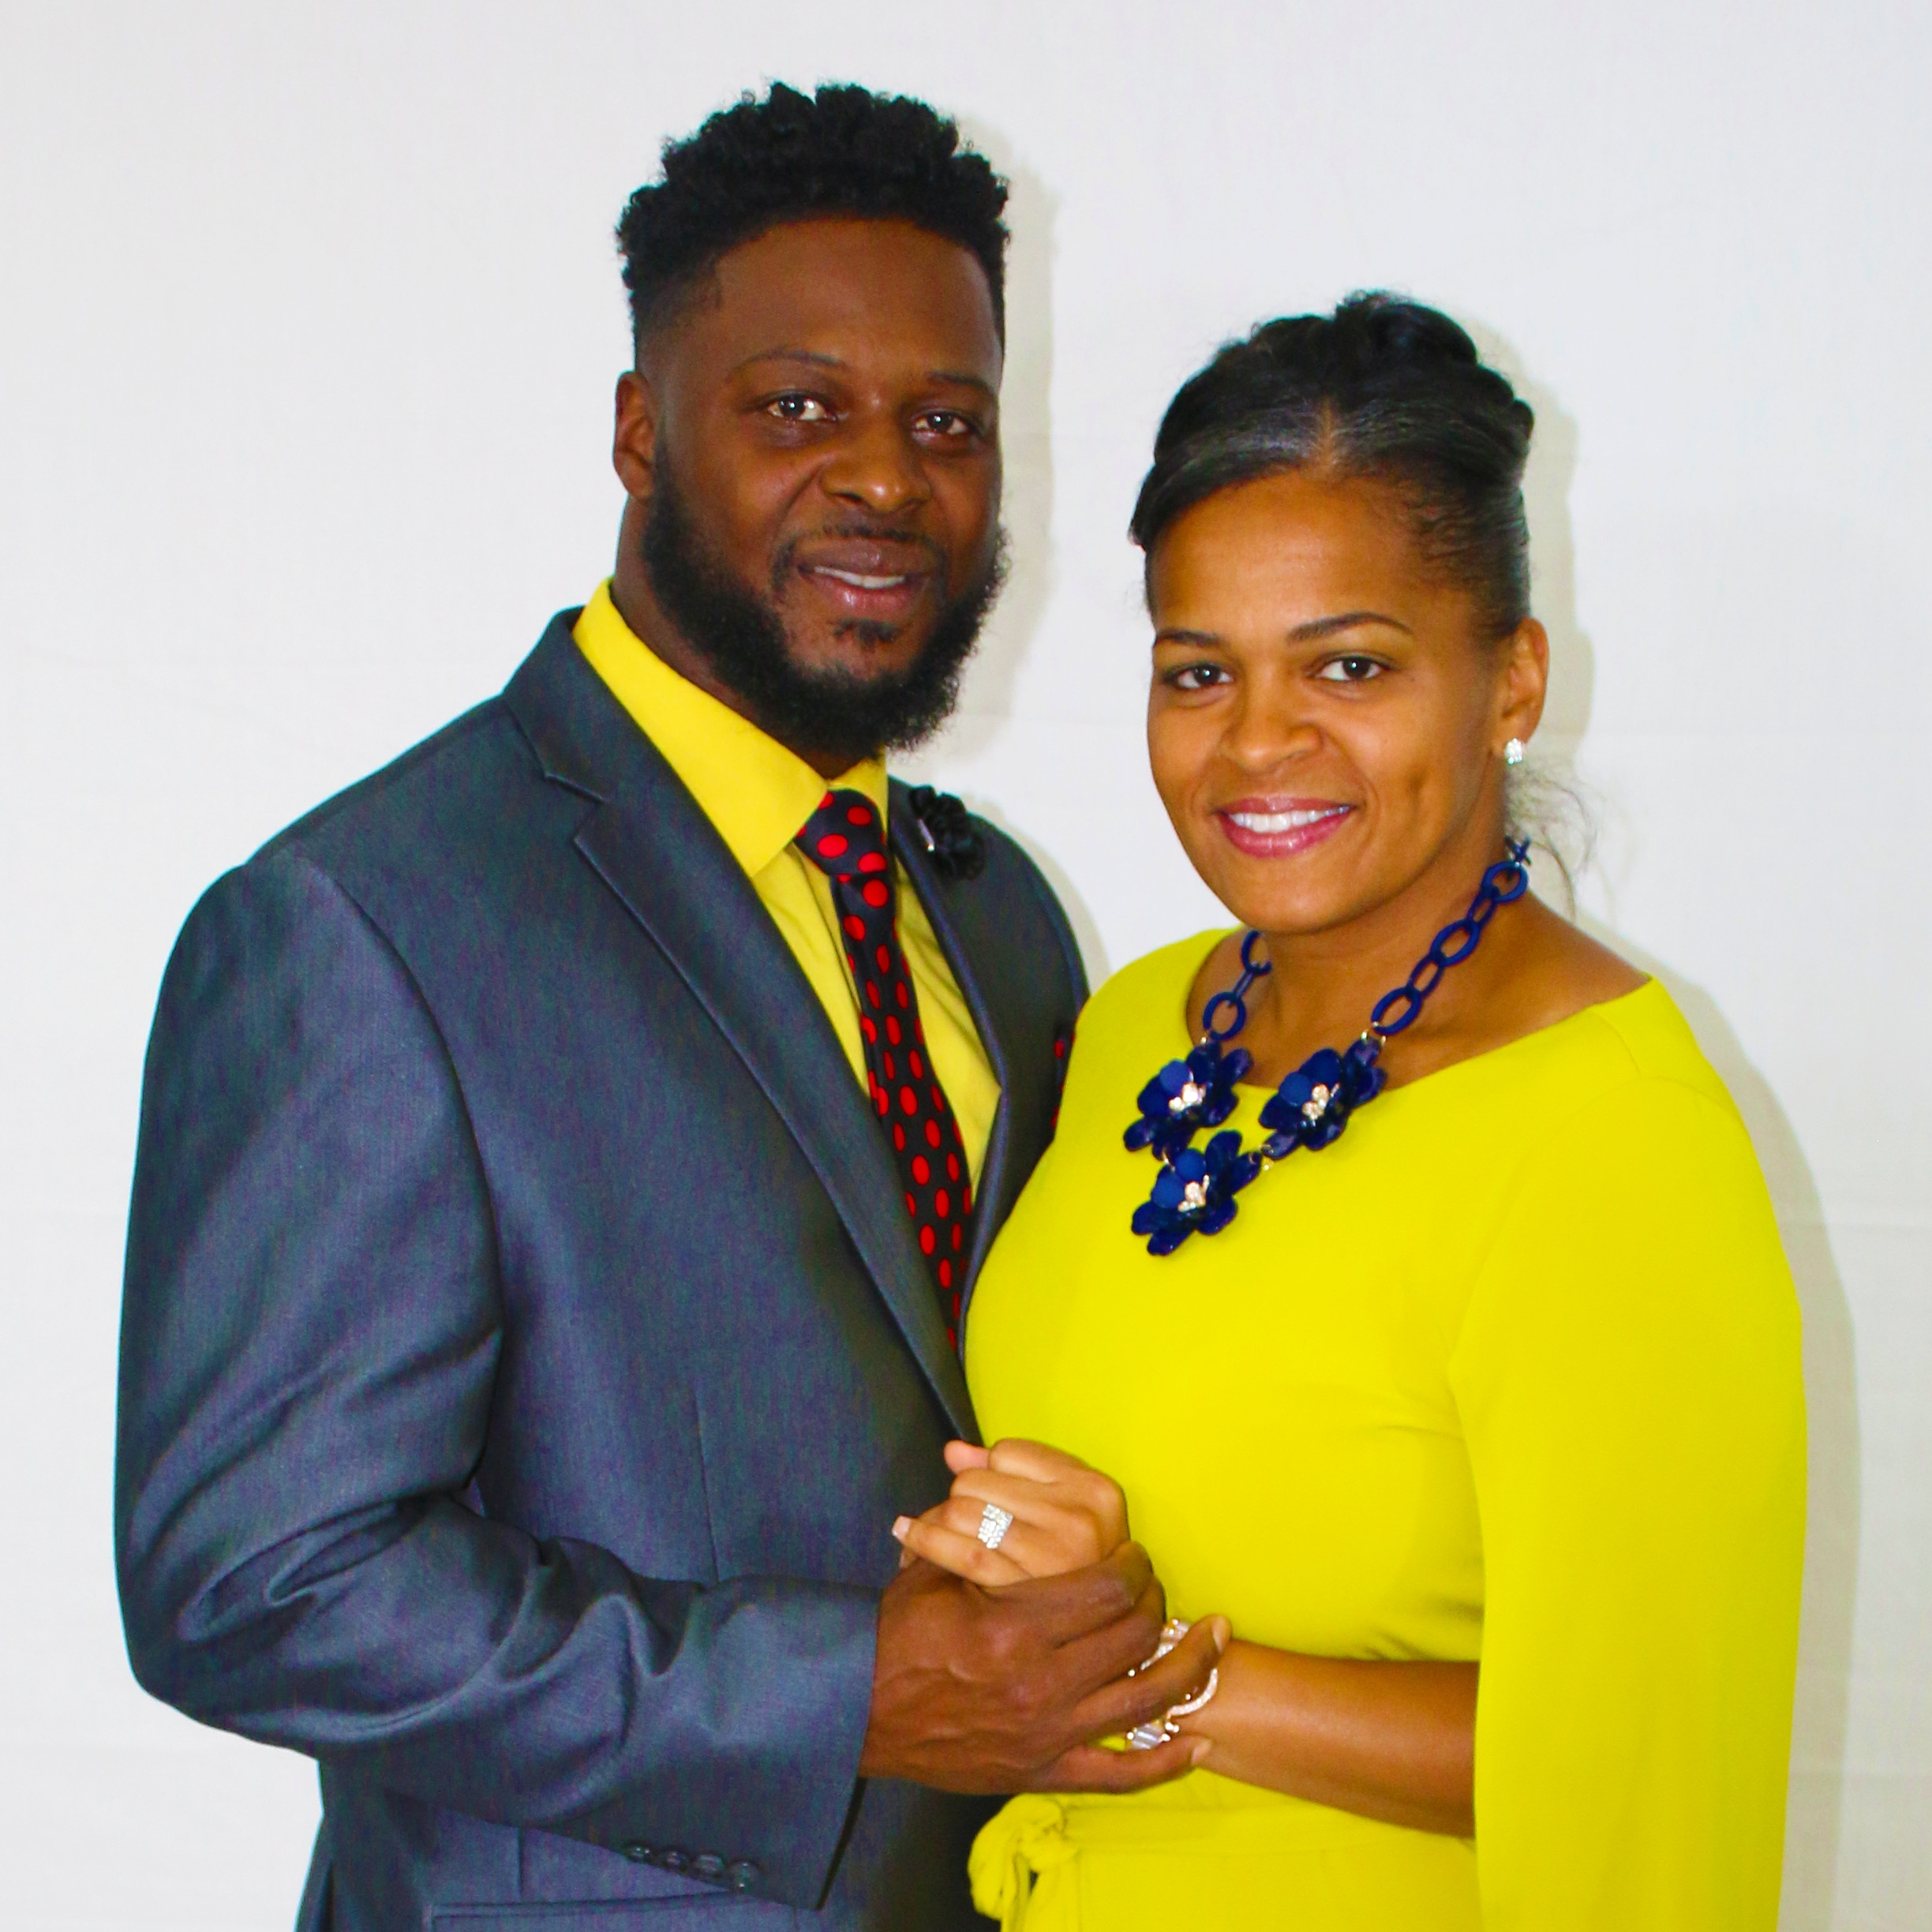 Pastors Aaron & Ronnise White - Pastors Aaron & Ronnise White are dedicated to building the Kingdom of God by training, encouraging, and impacting the young adult generation. They have a passion for the souls of the youth and a burden to raise them in Godly admonition. They have the tenacity to equip young adults to be ACTIVE and not REACTIVE.